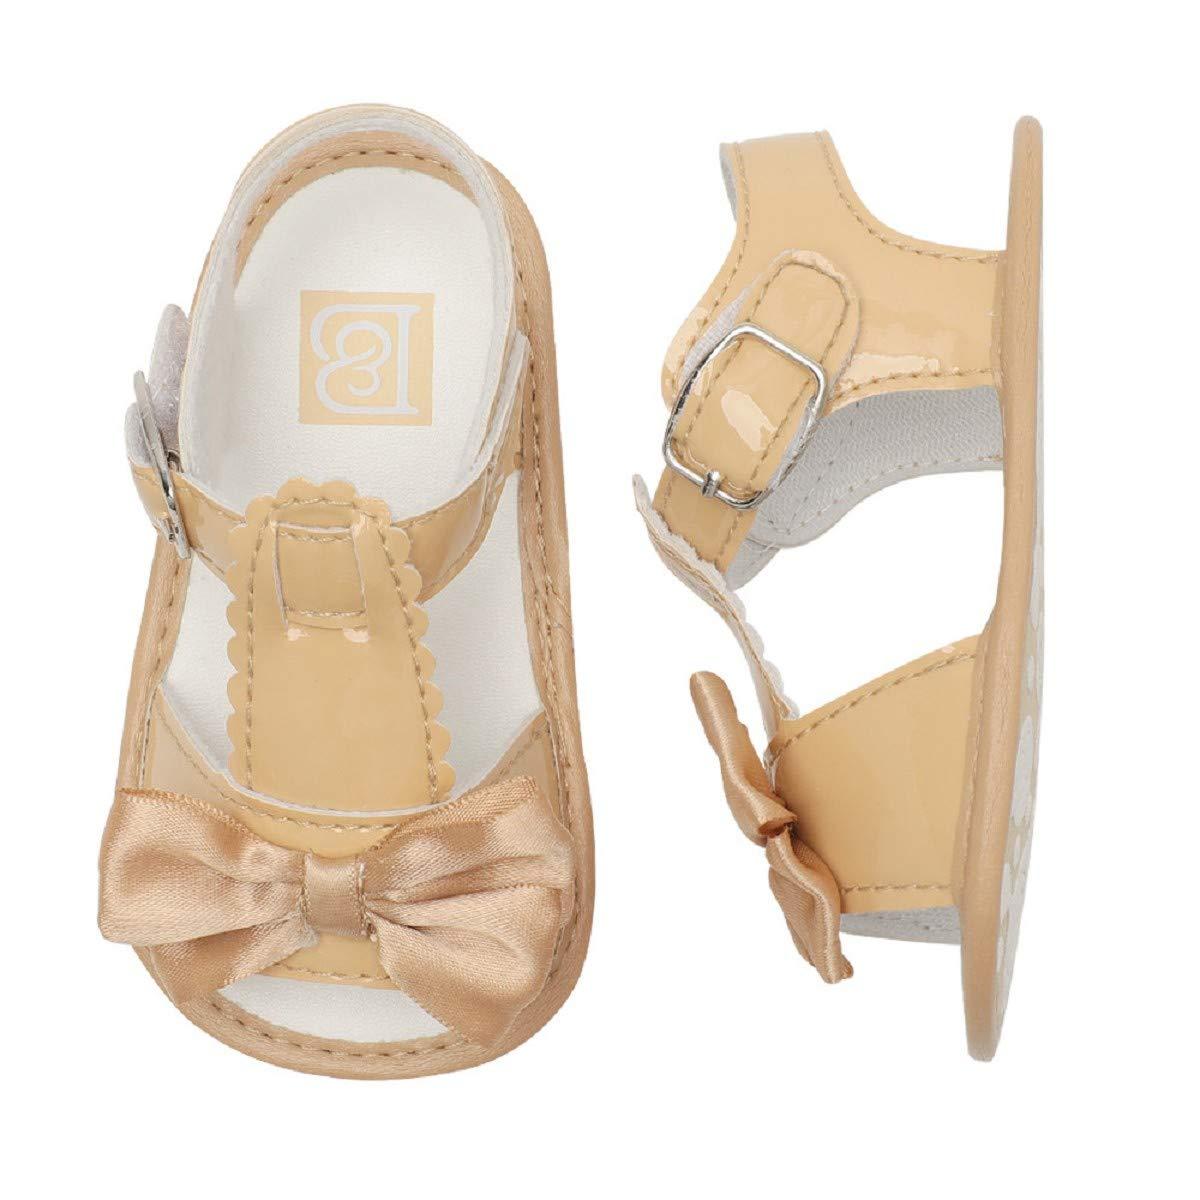 Girls Sandals FAPIZI Princess Leather Mary Jane Toddler Children Casual Single Shoes Loafers